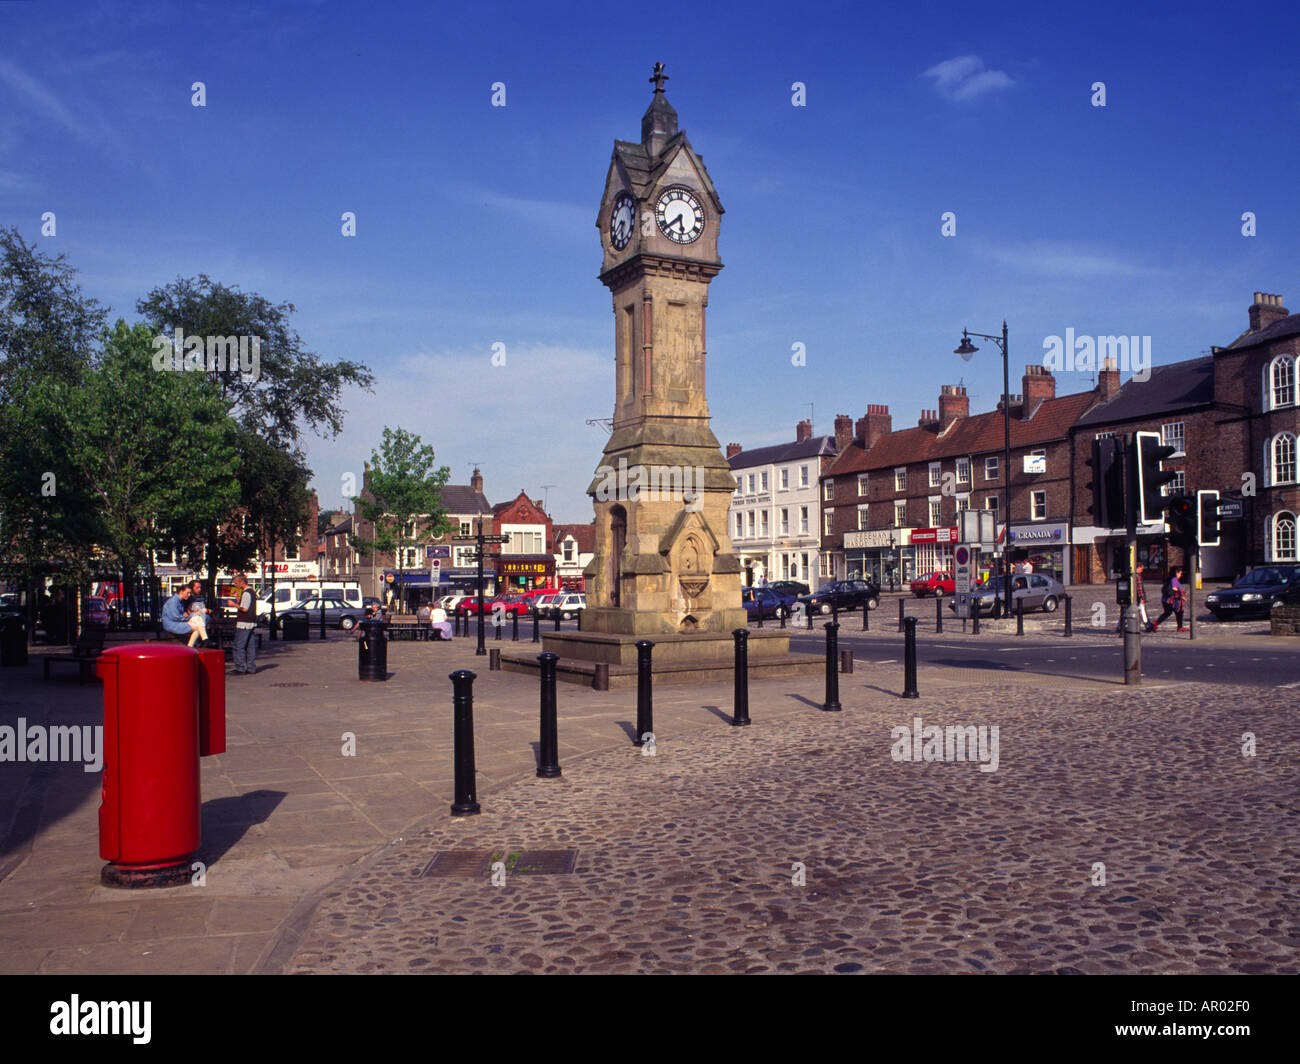 darrowby stock photos darrowby stock images alamy the market place and clock tower thirsk north yorkshire the home town of james herriot vet